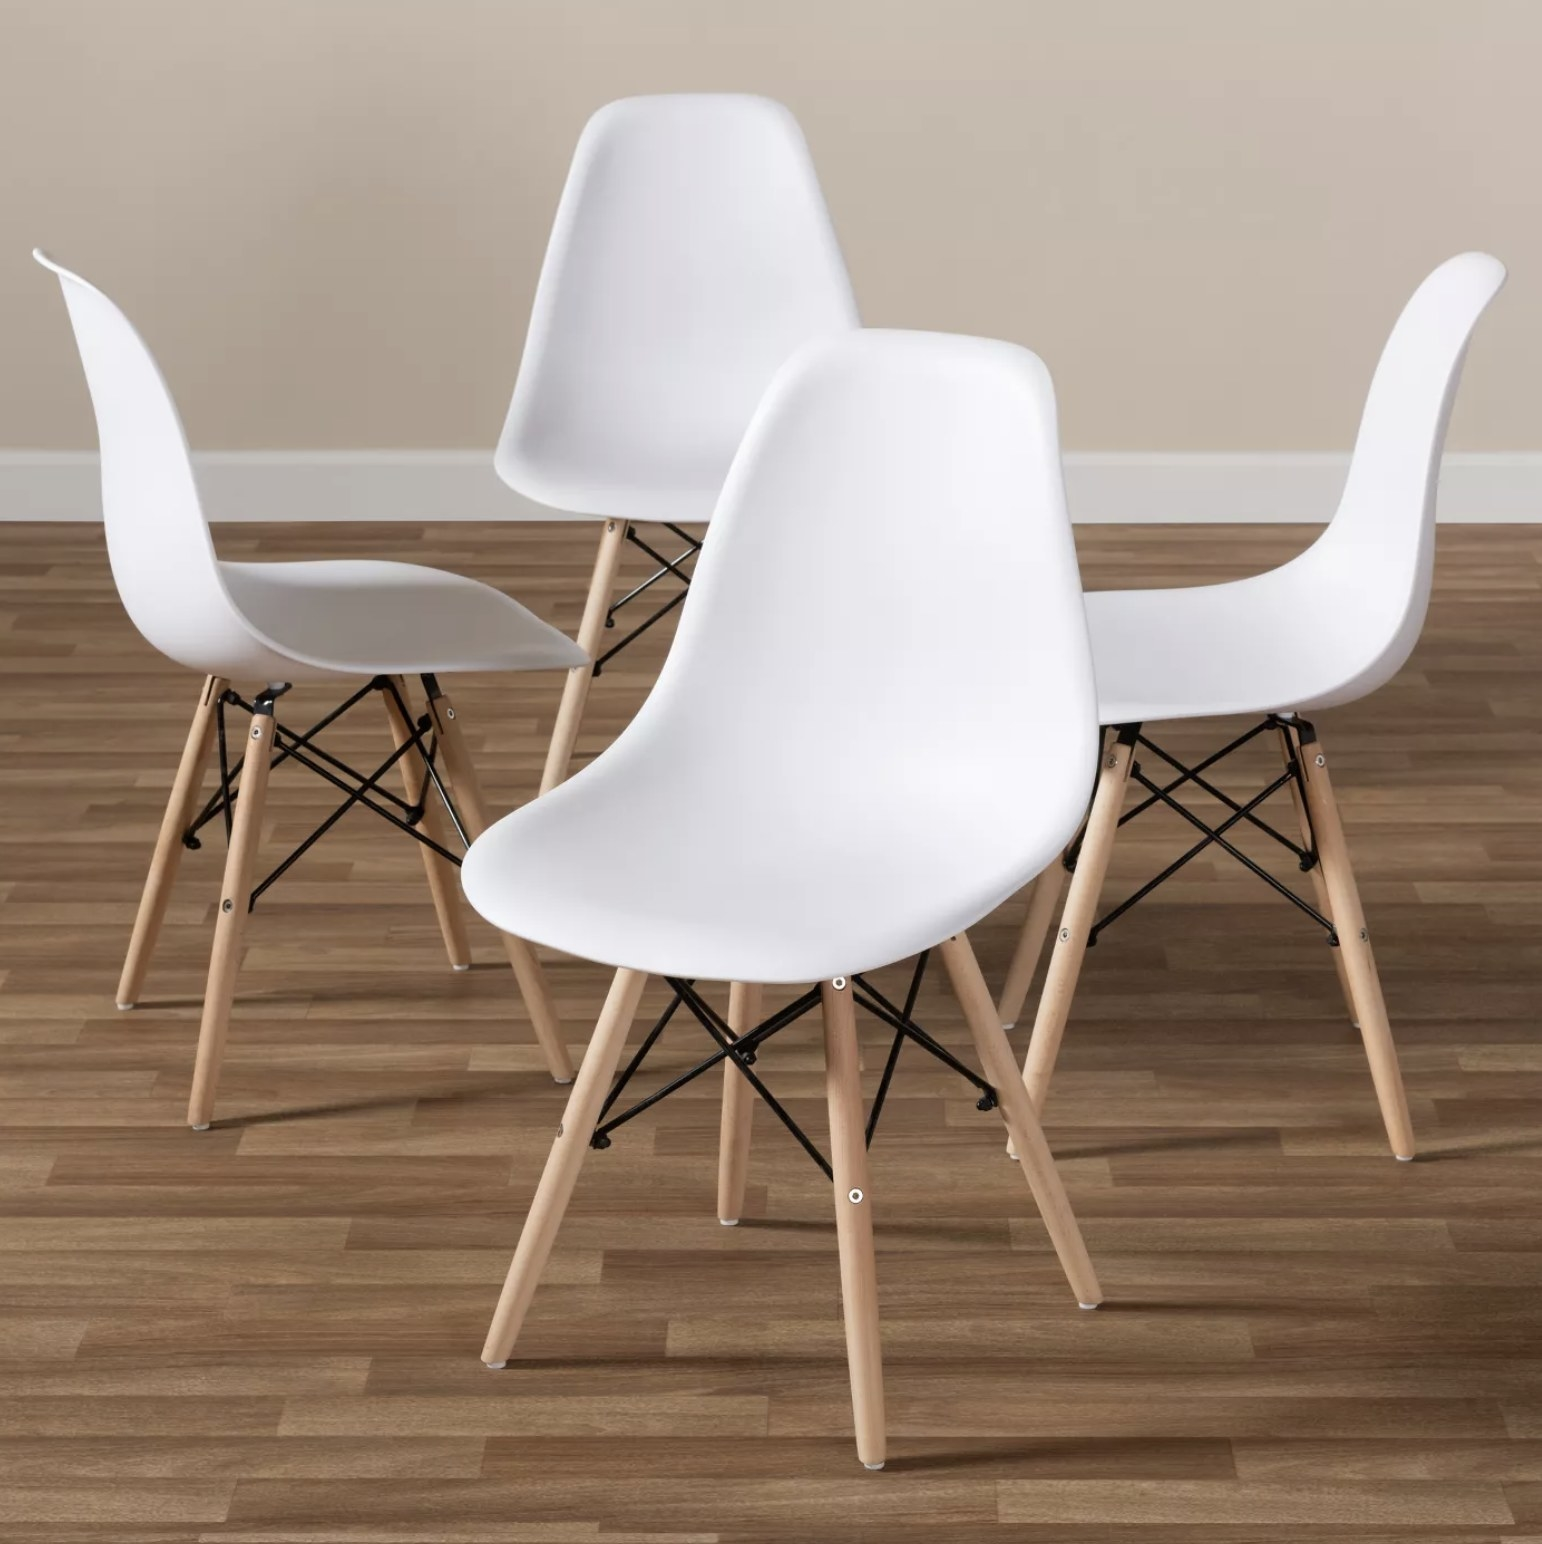 A set of four white mid-century style dining chairs with light wooden legs